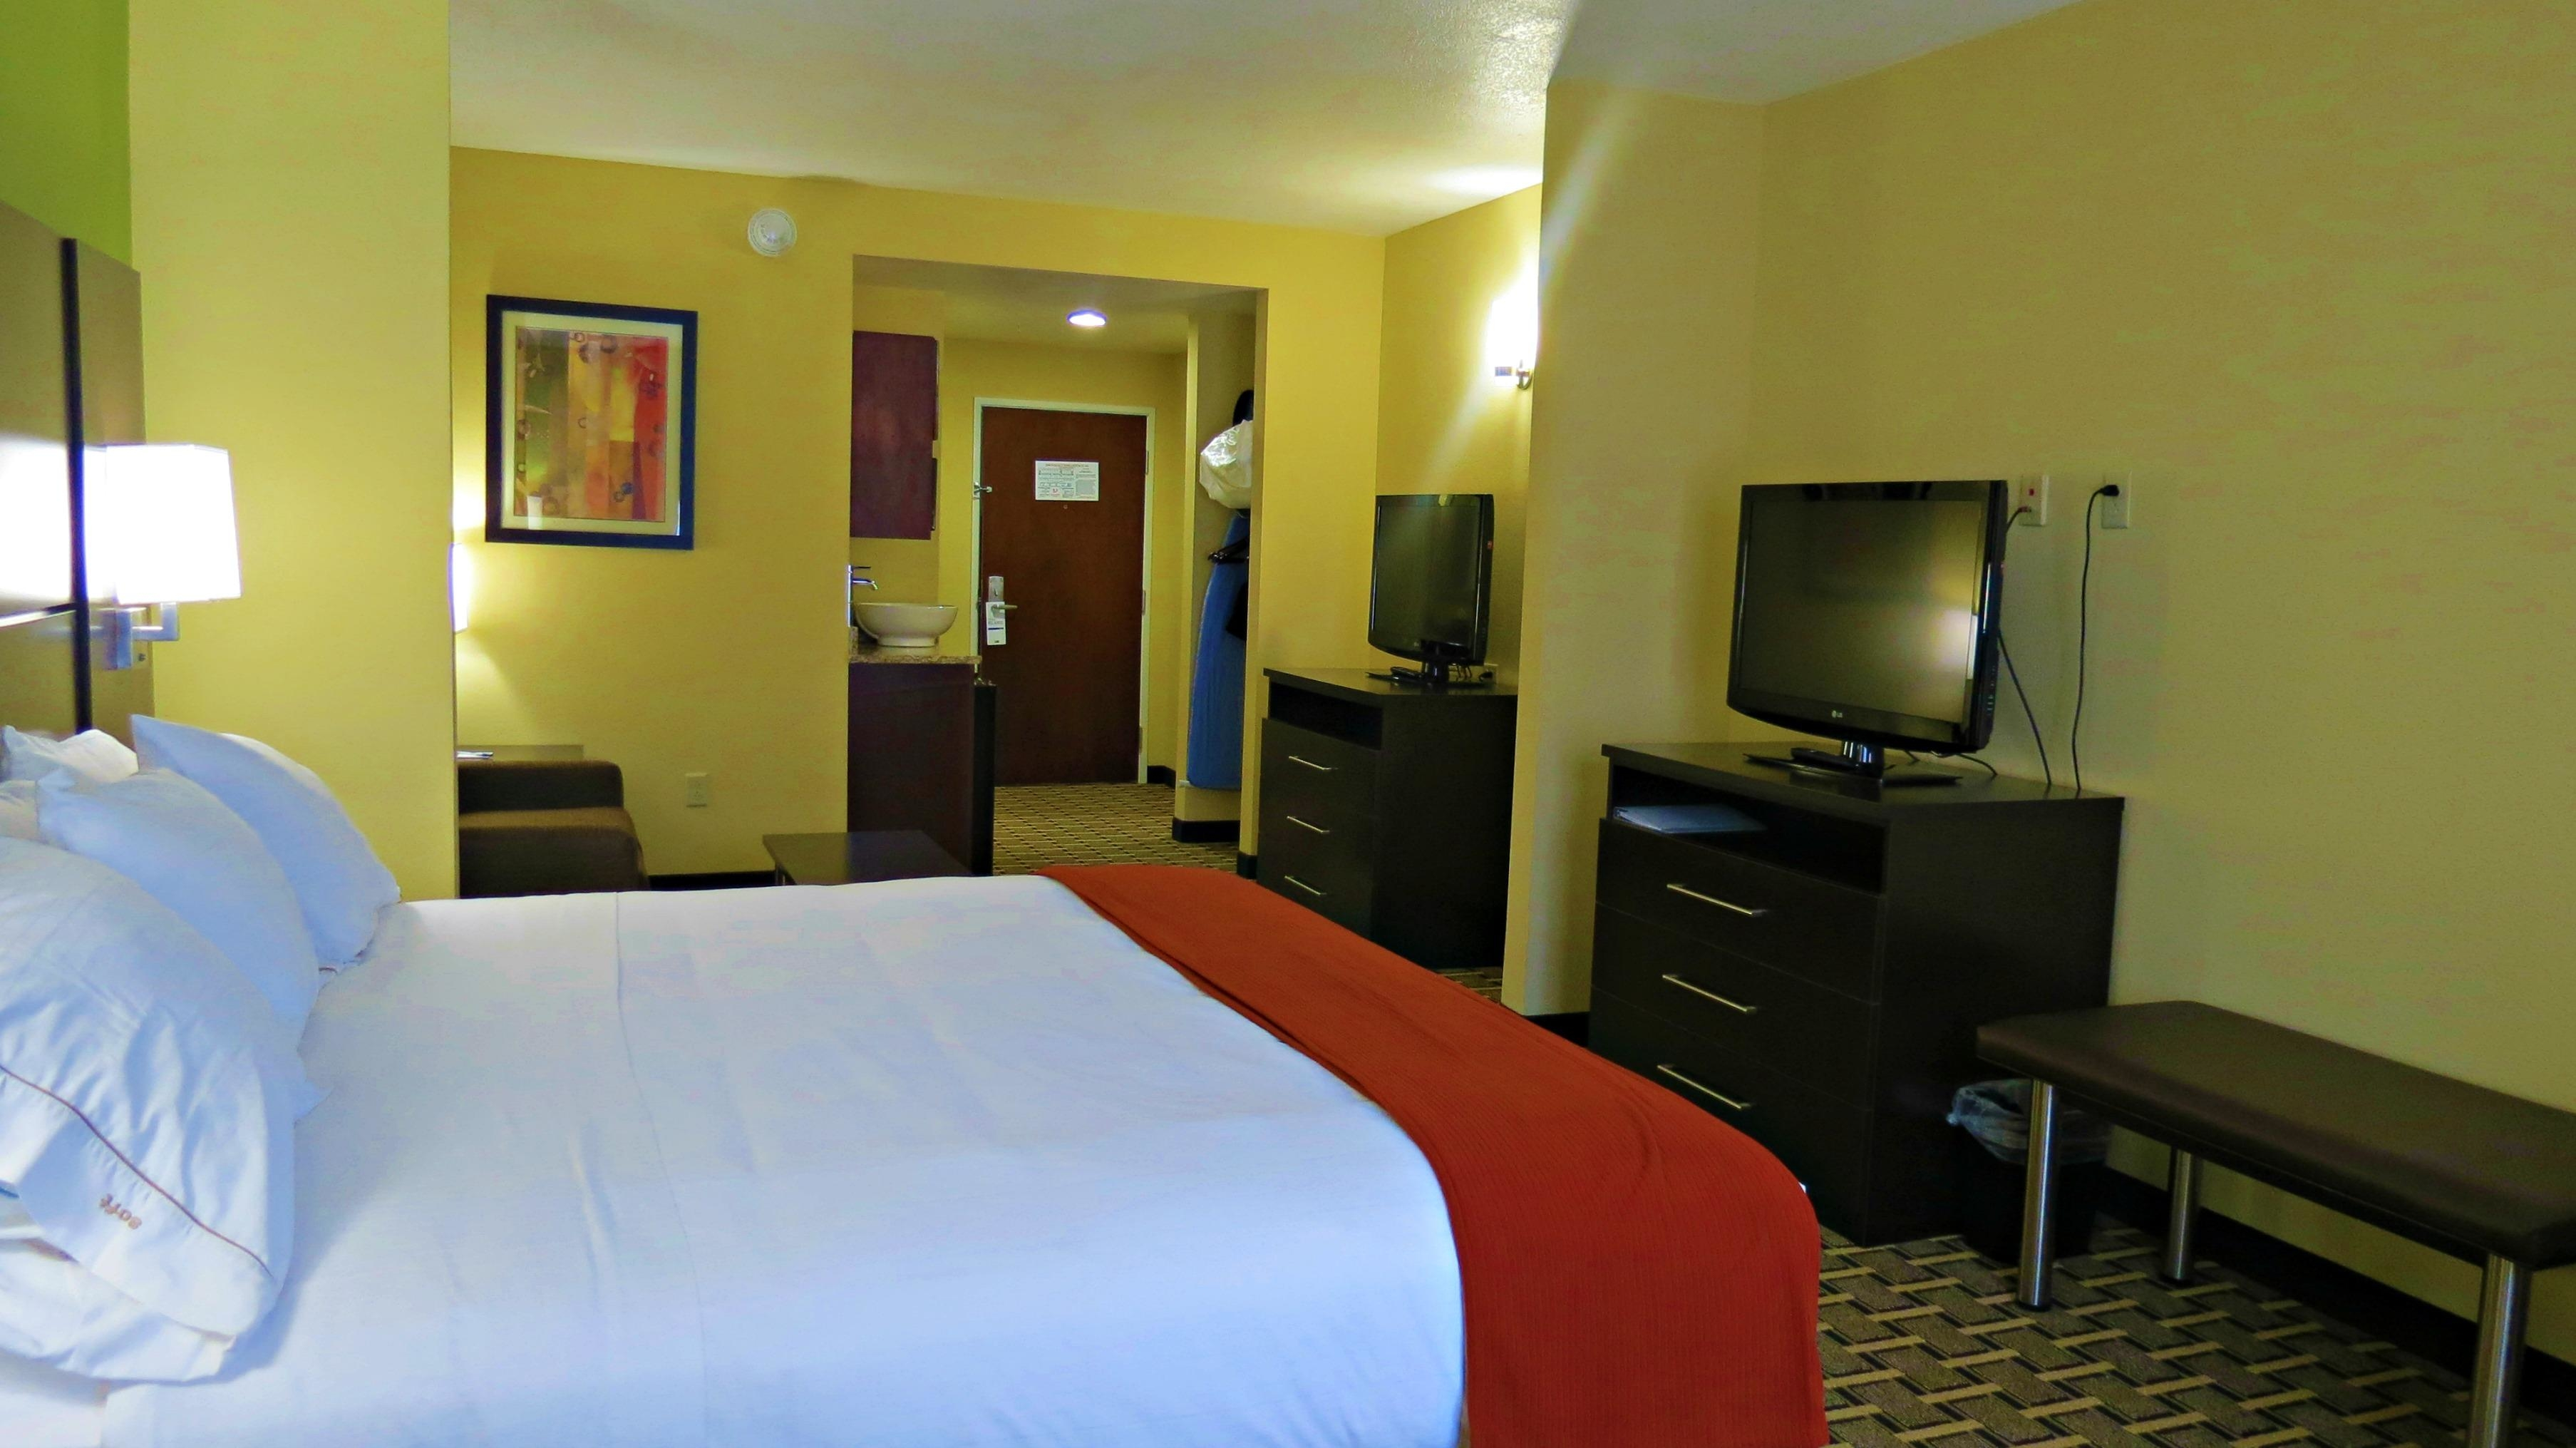 Holiday Inn Express & Suites image 2